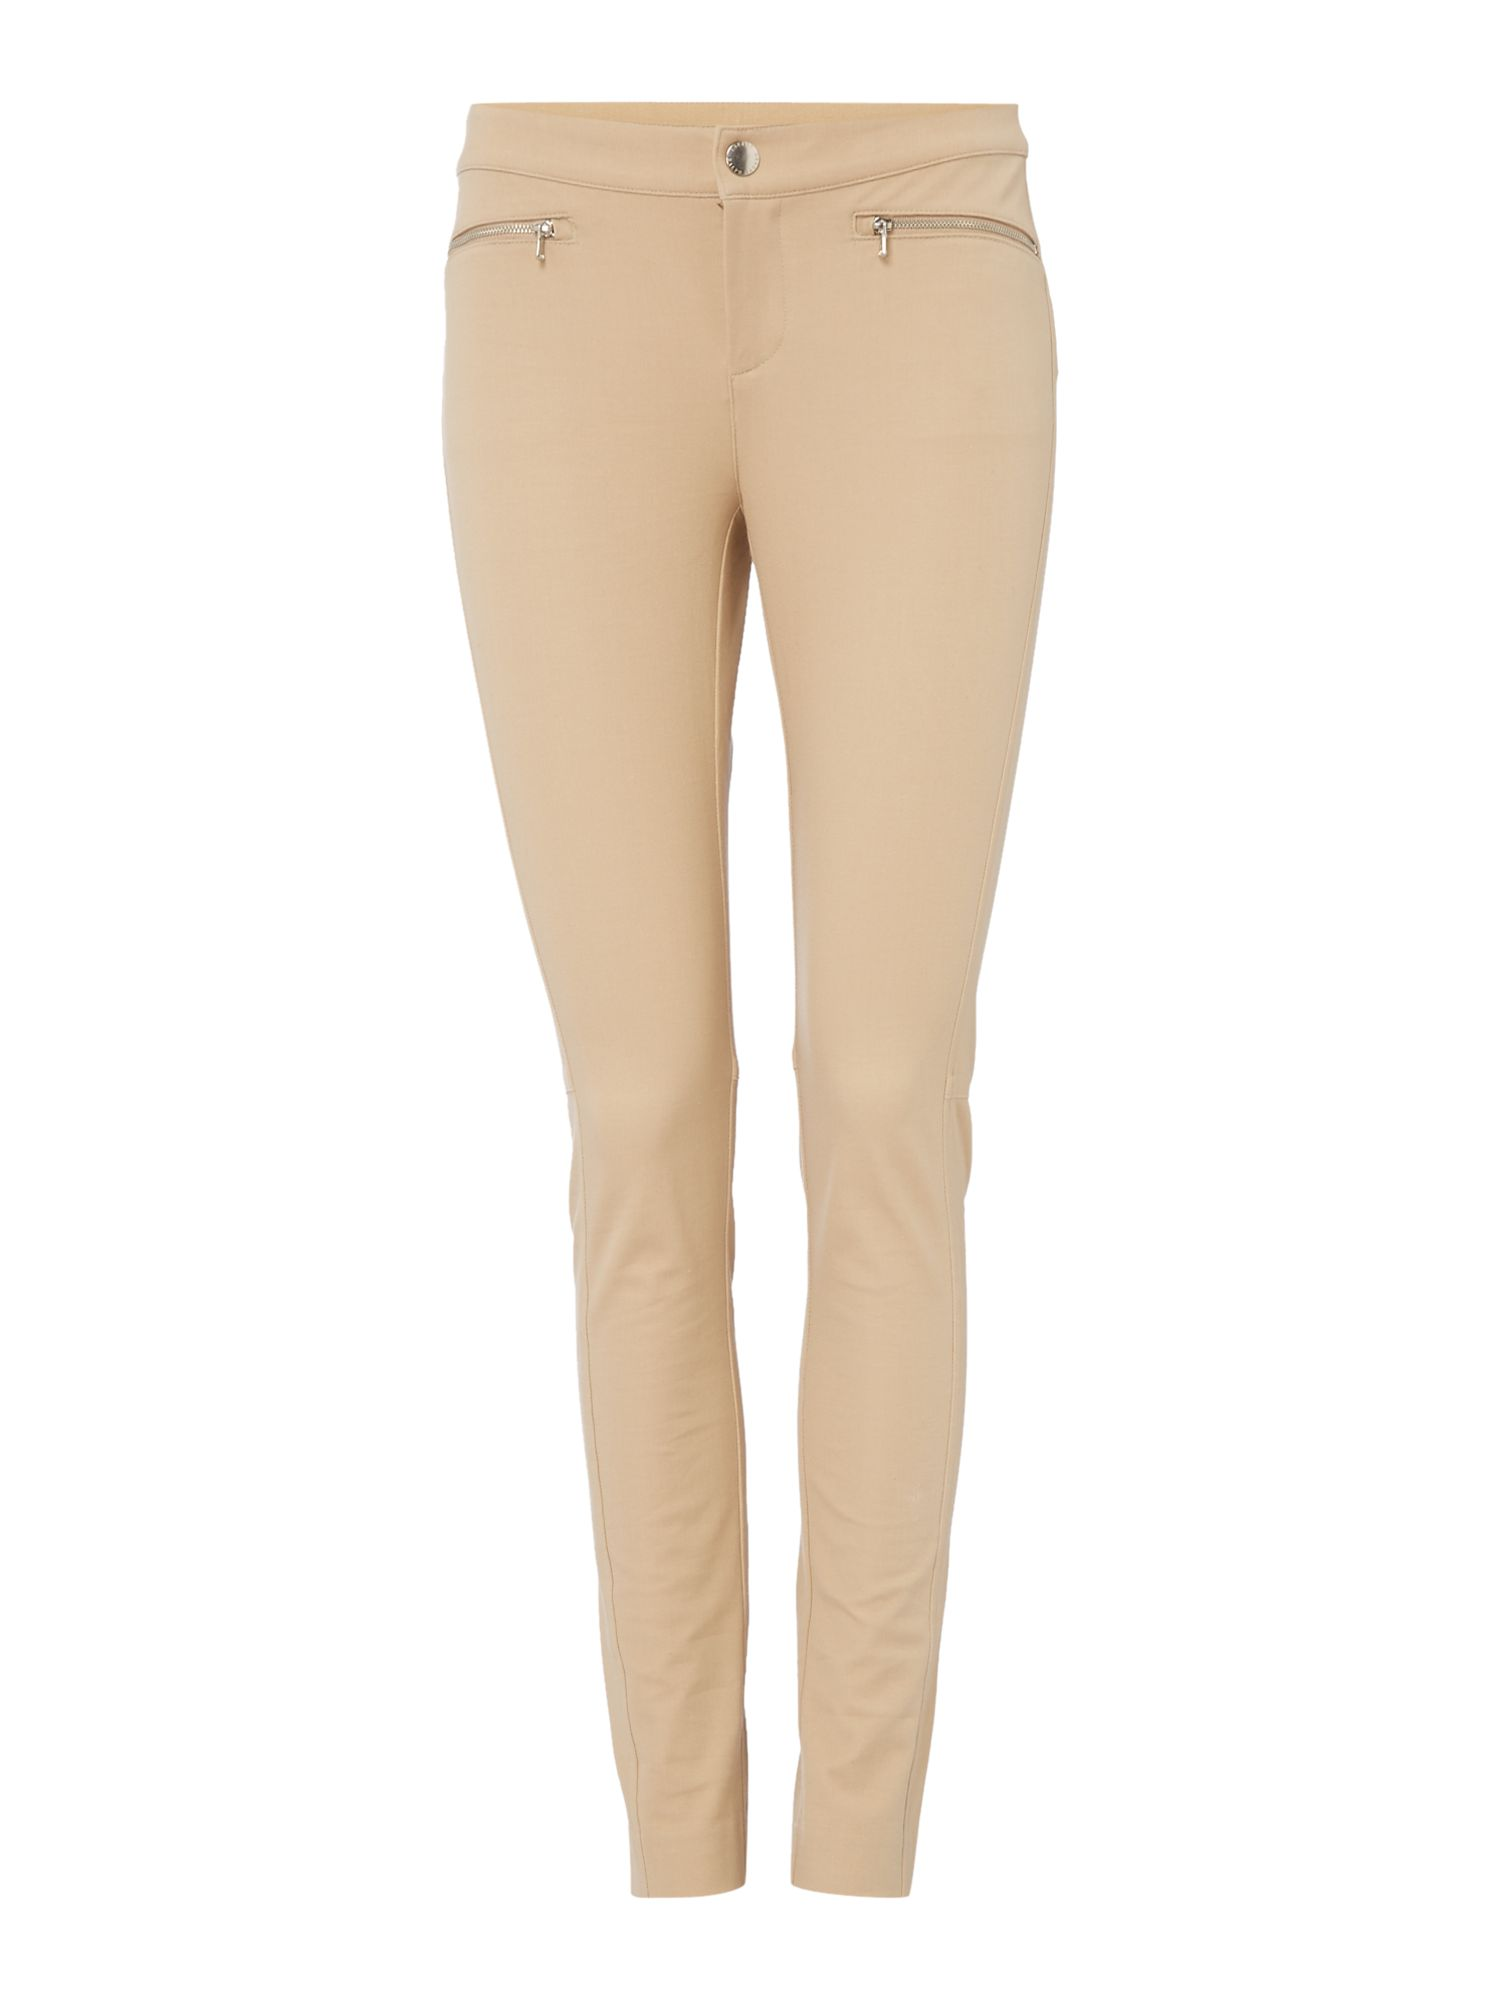 Amazing Armani Jeans Palazzo Pants In Linen In Natural  Lyst